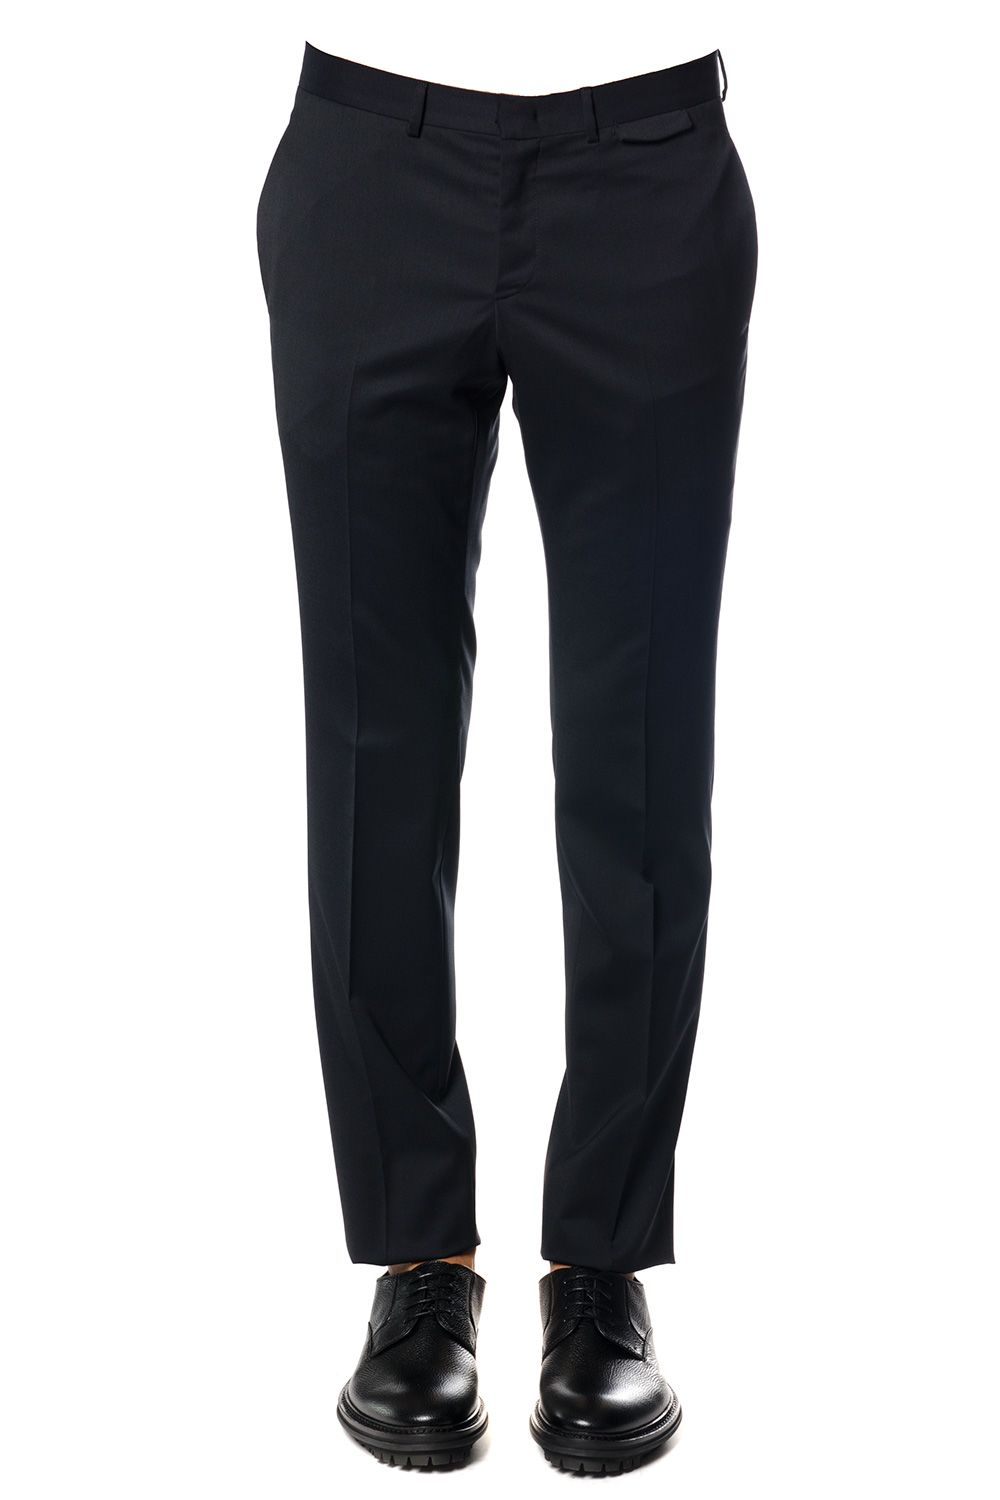 Z Zegna Narrow Wool Blend Trousers